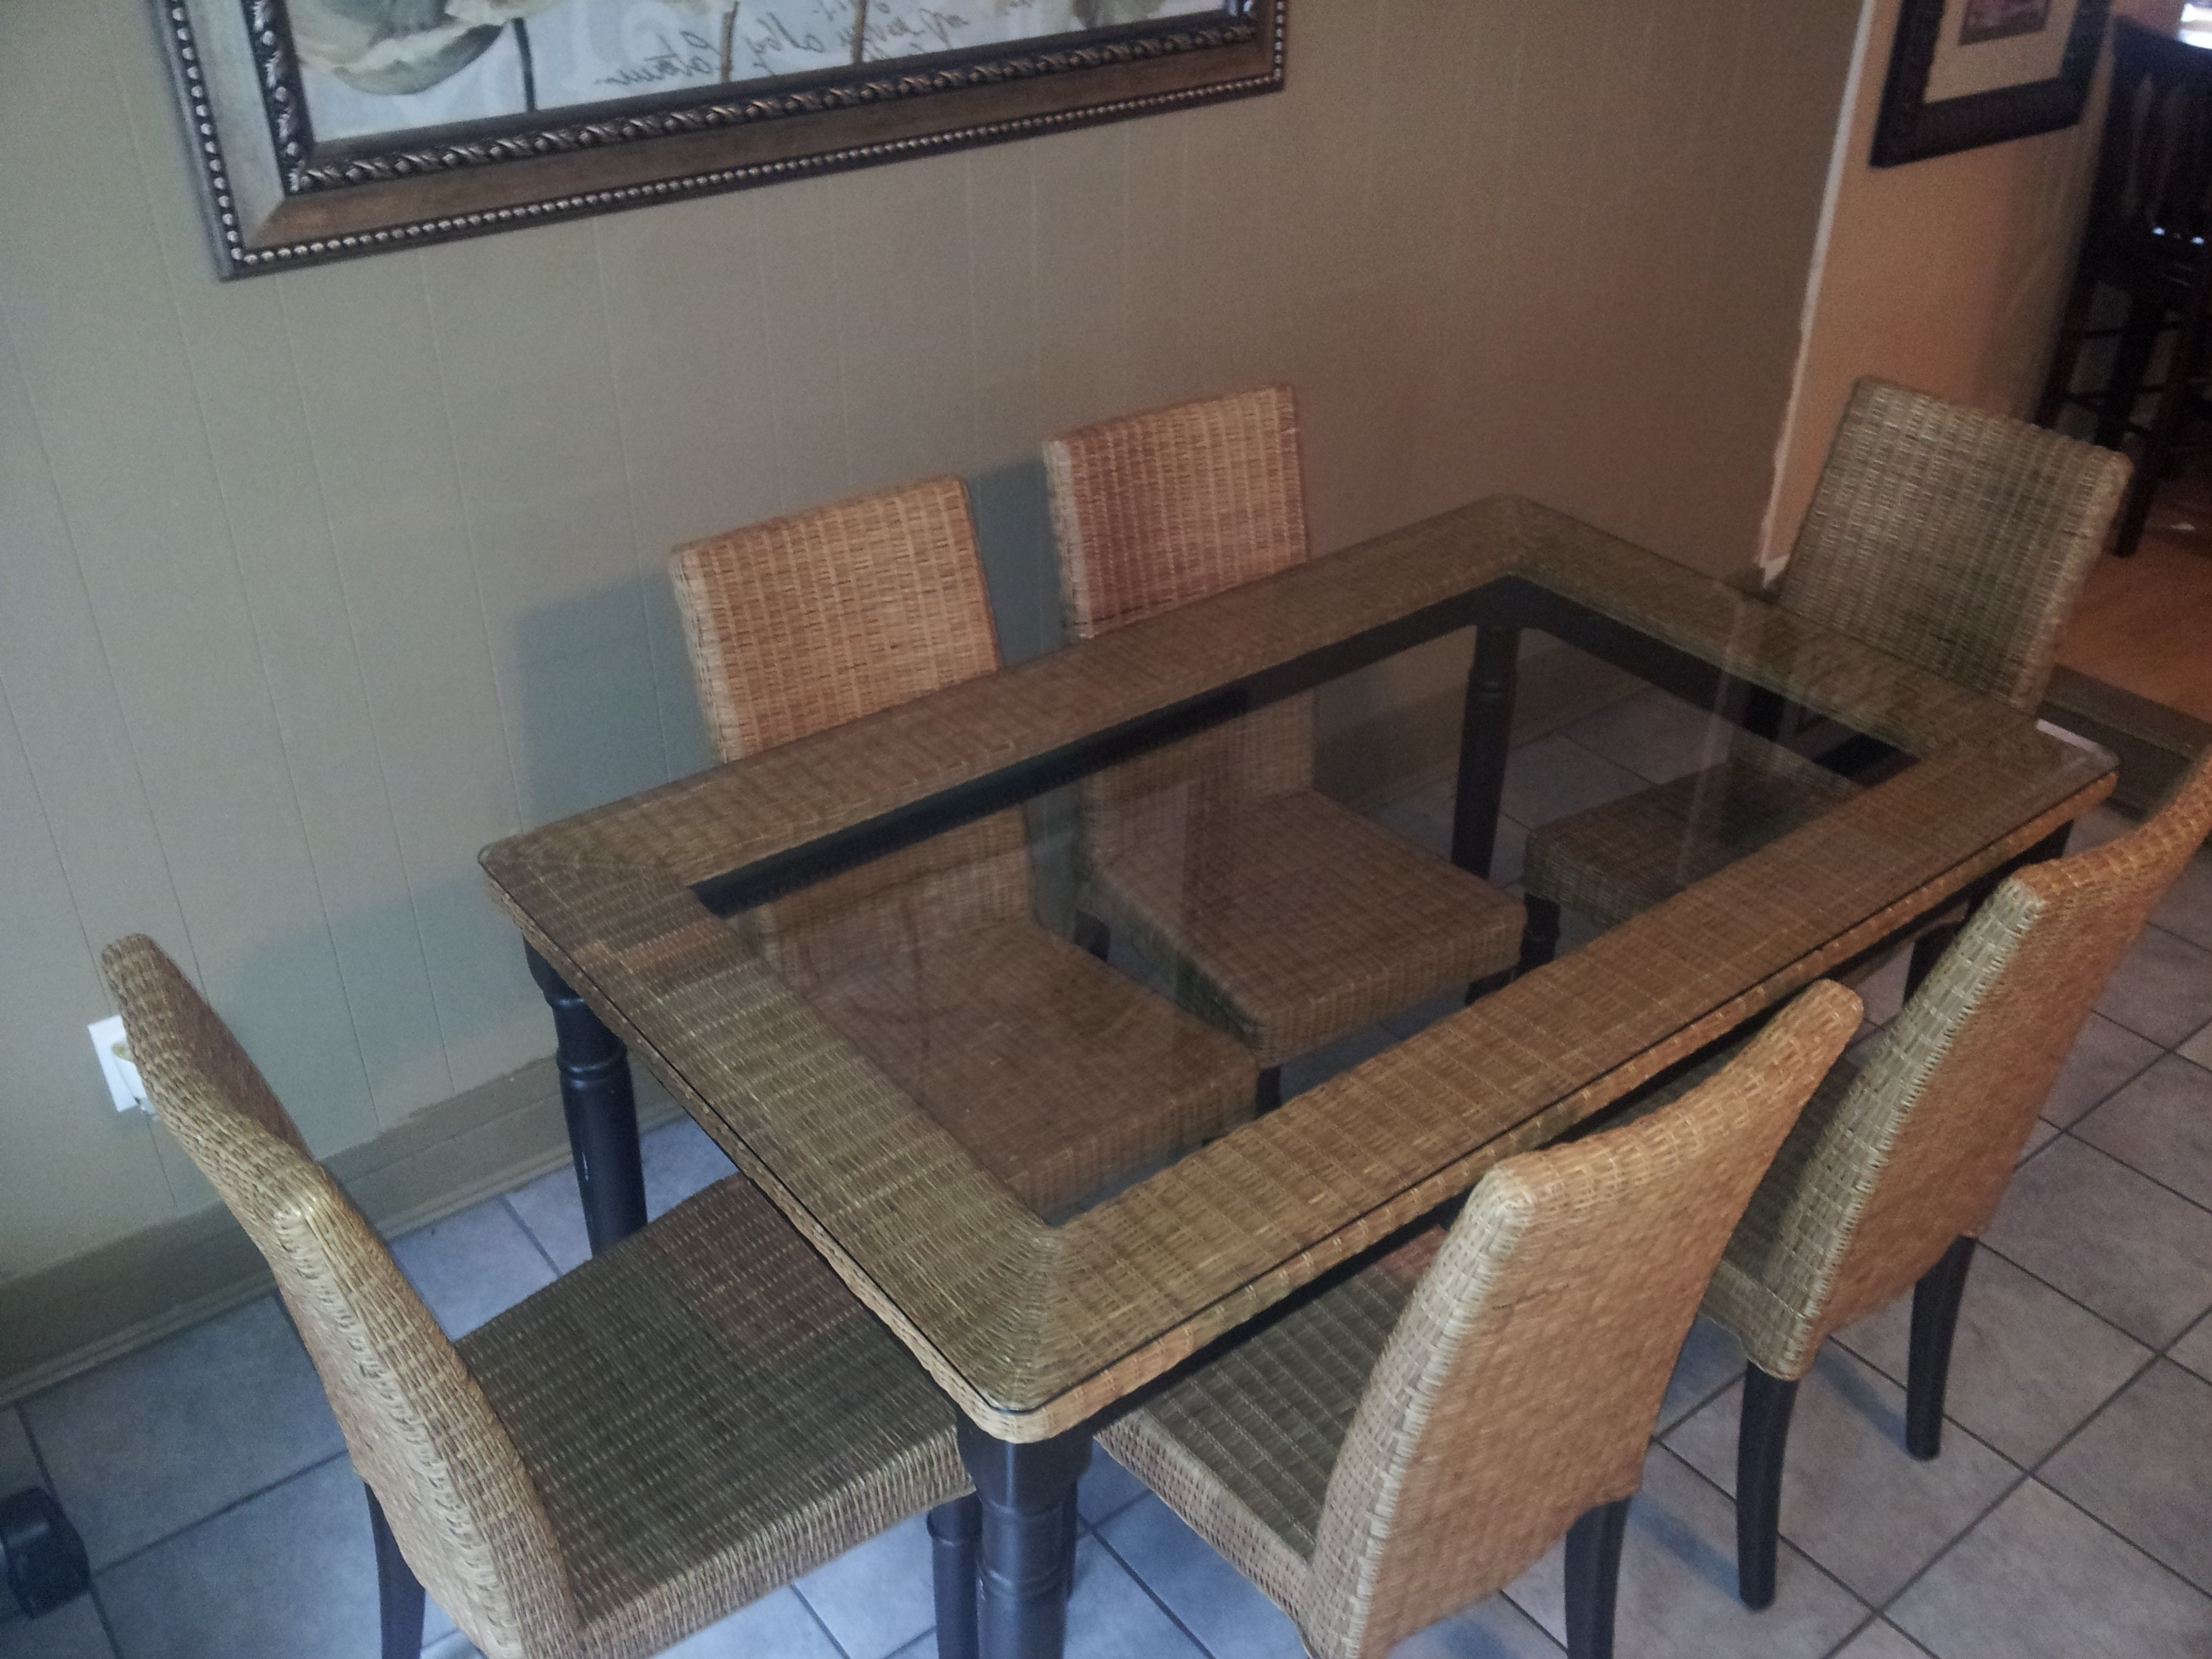 Preferred Best Powerful Photos Wicker Dining Table With Glass Top On A Budget Pertaining To Wicker And Glass Dining Tables (Gallery 5 of 25)